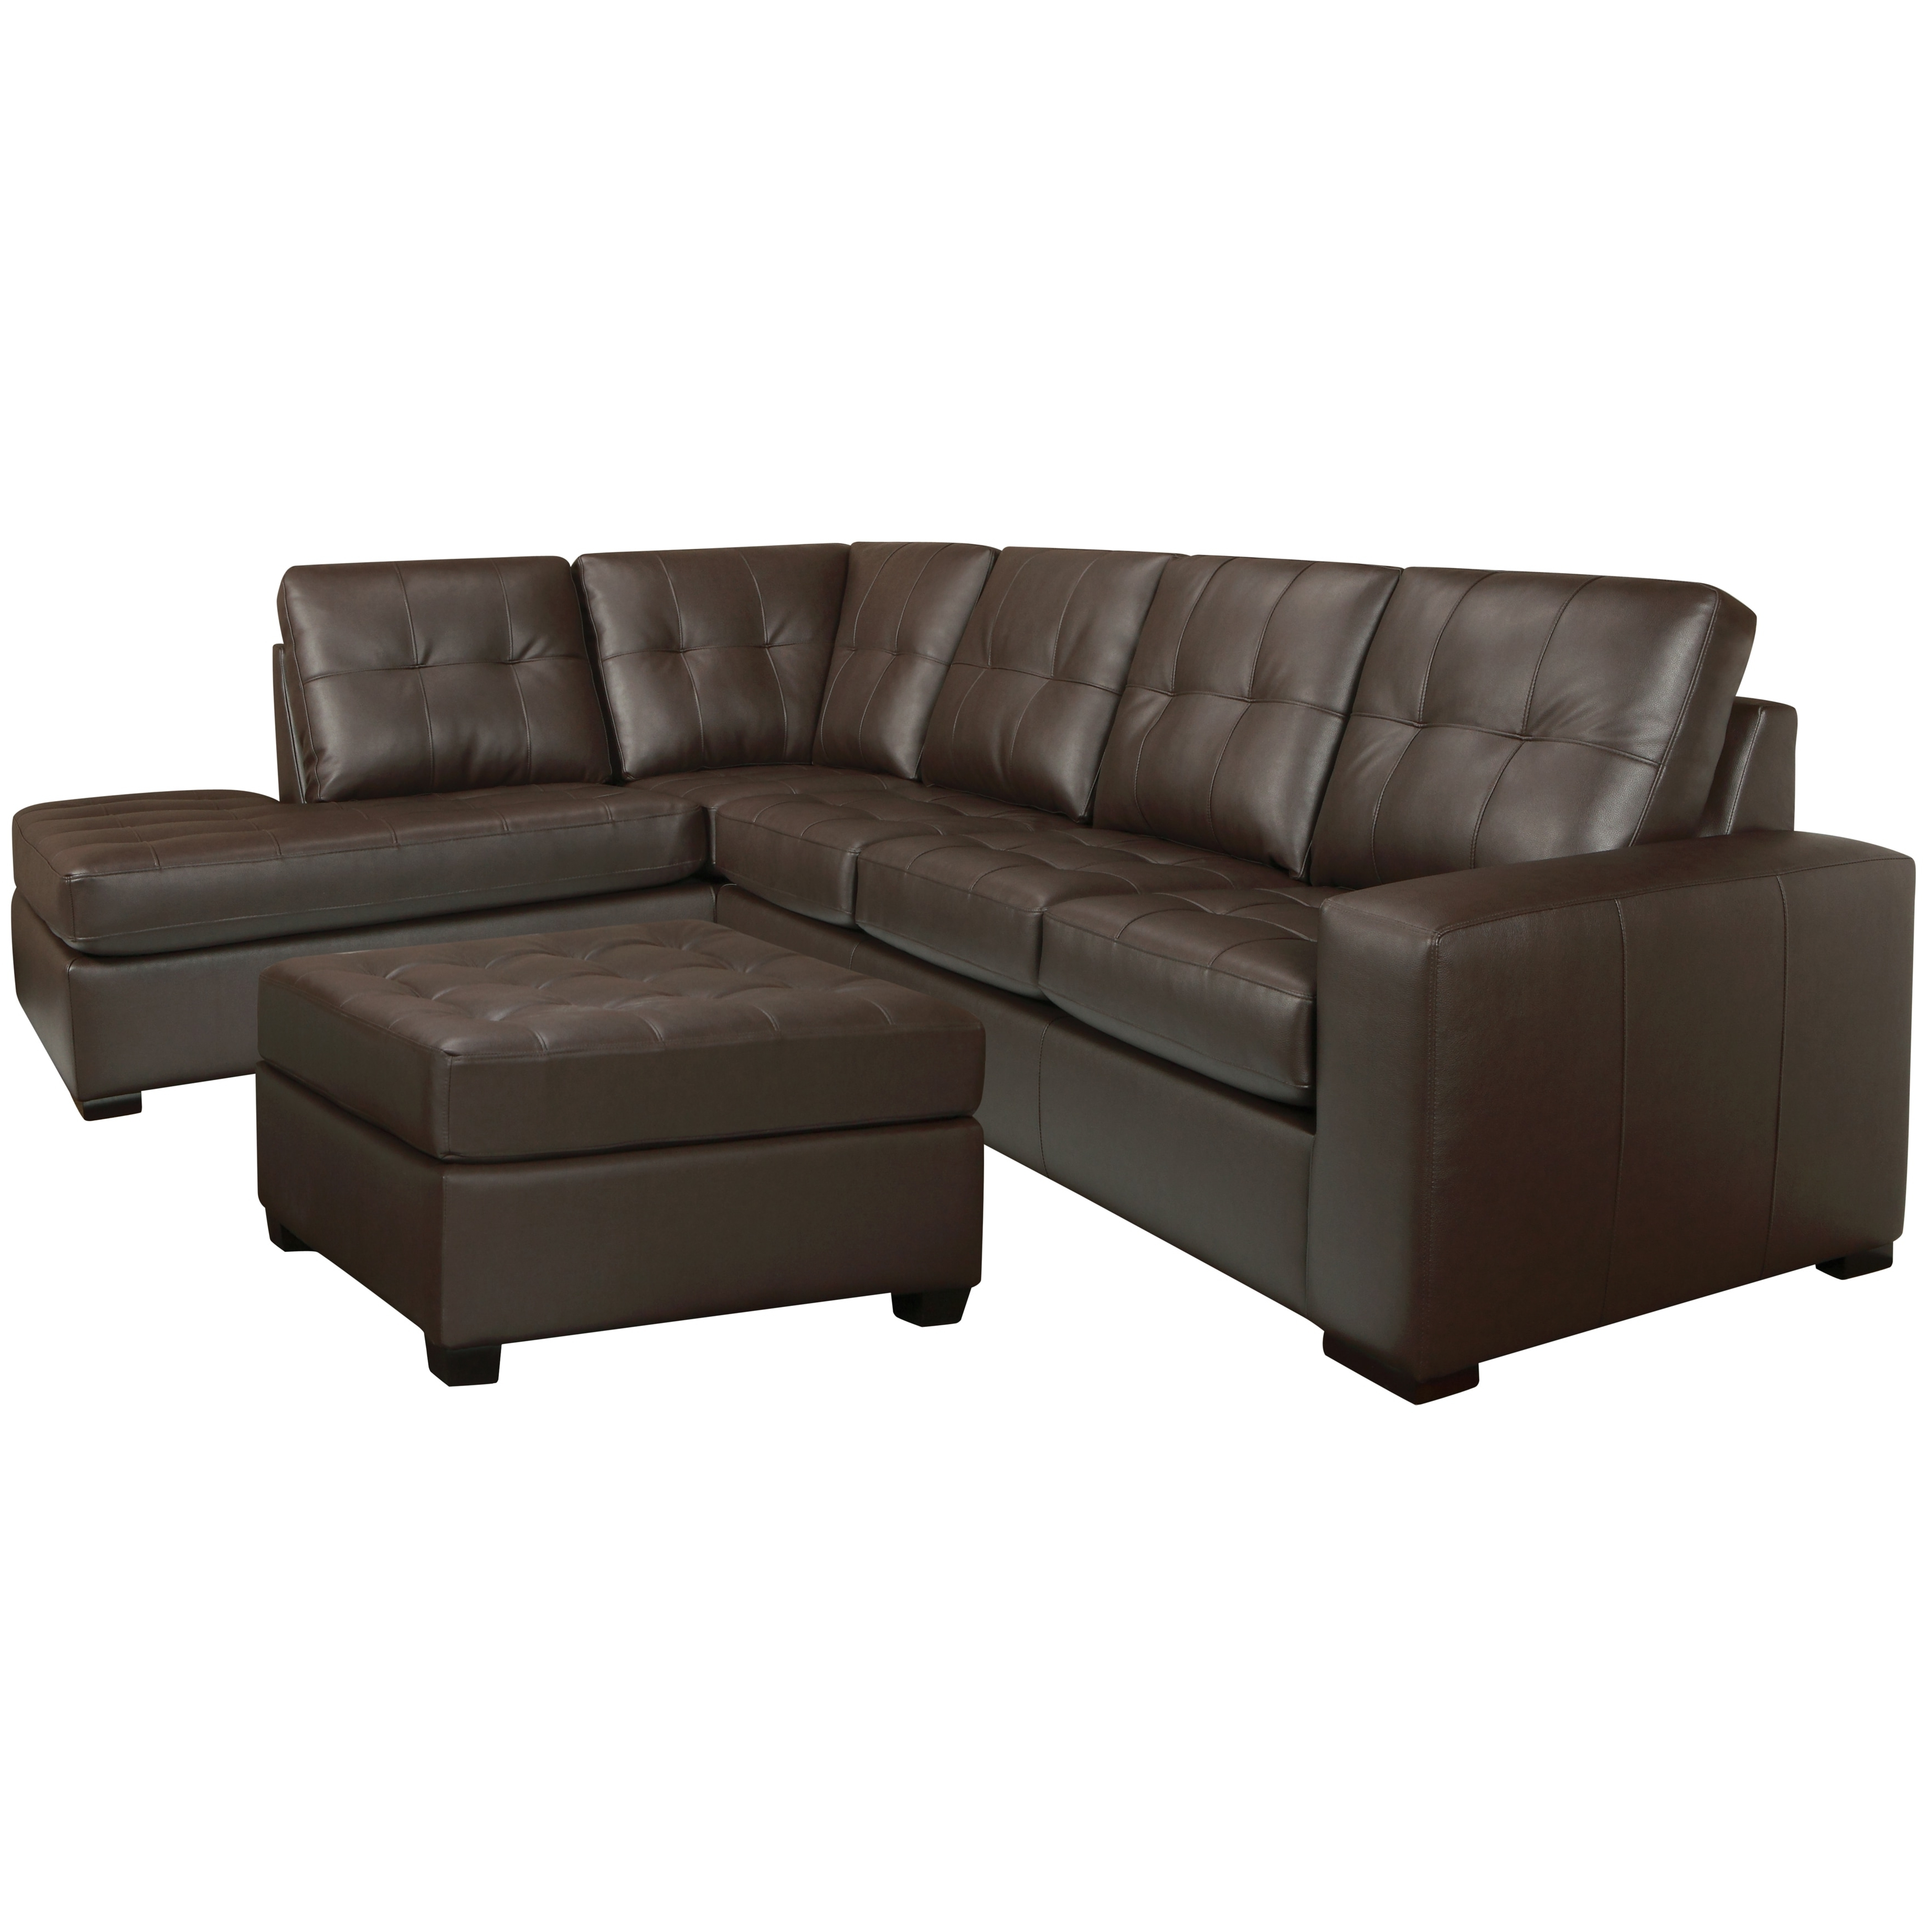 Chocolate Brown Sectional Sofas Inside Favorite Drake Chocolate Brown Italian Leather Sectional Sofa And Ottoman (View 4 of 20)